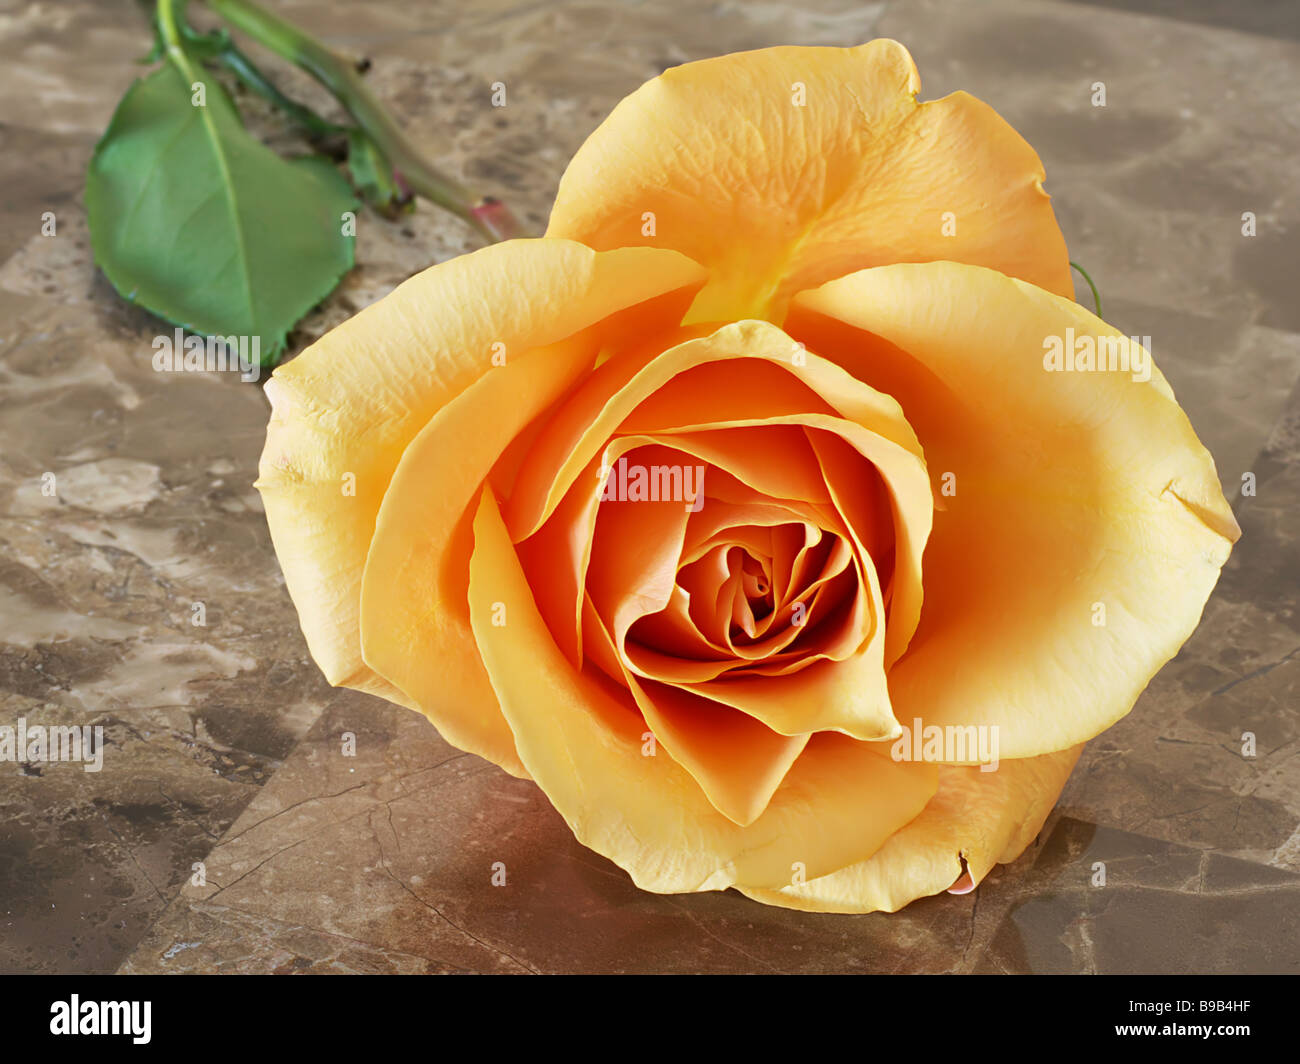 Orange rose on fancy table - Stock Image